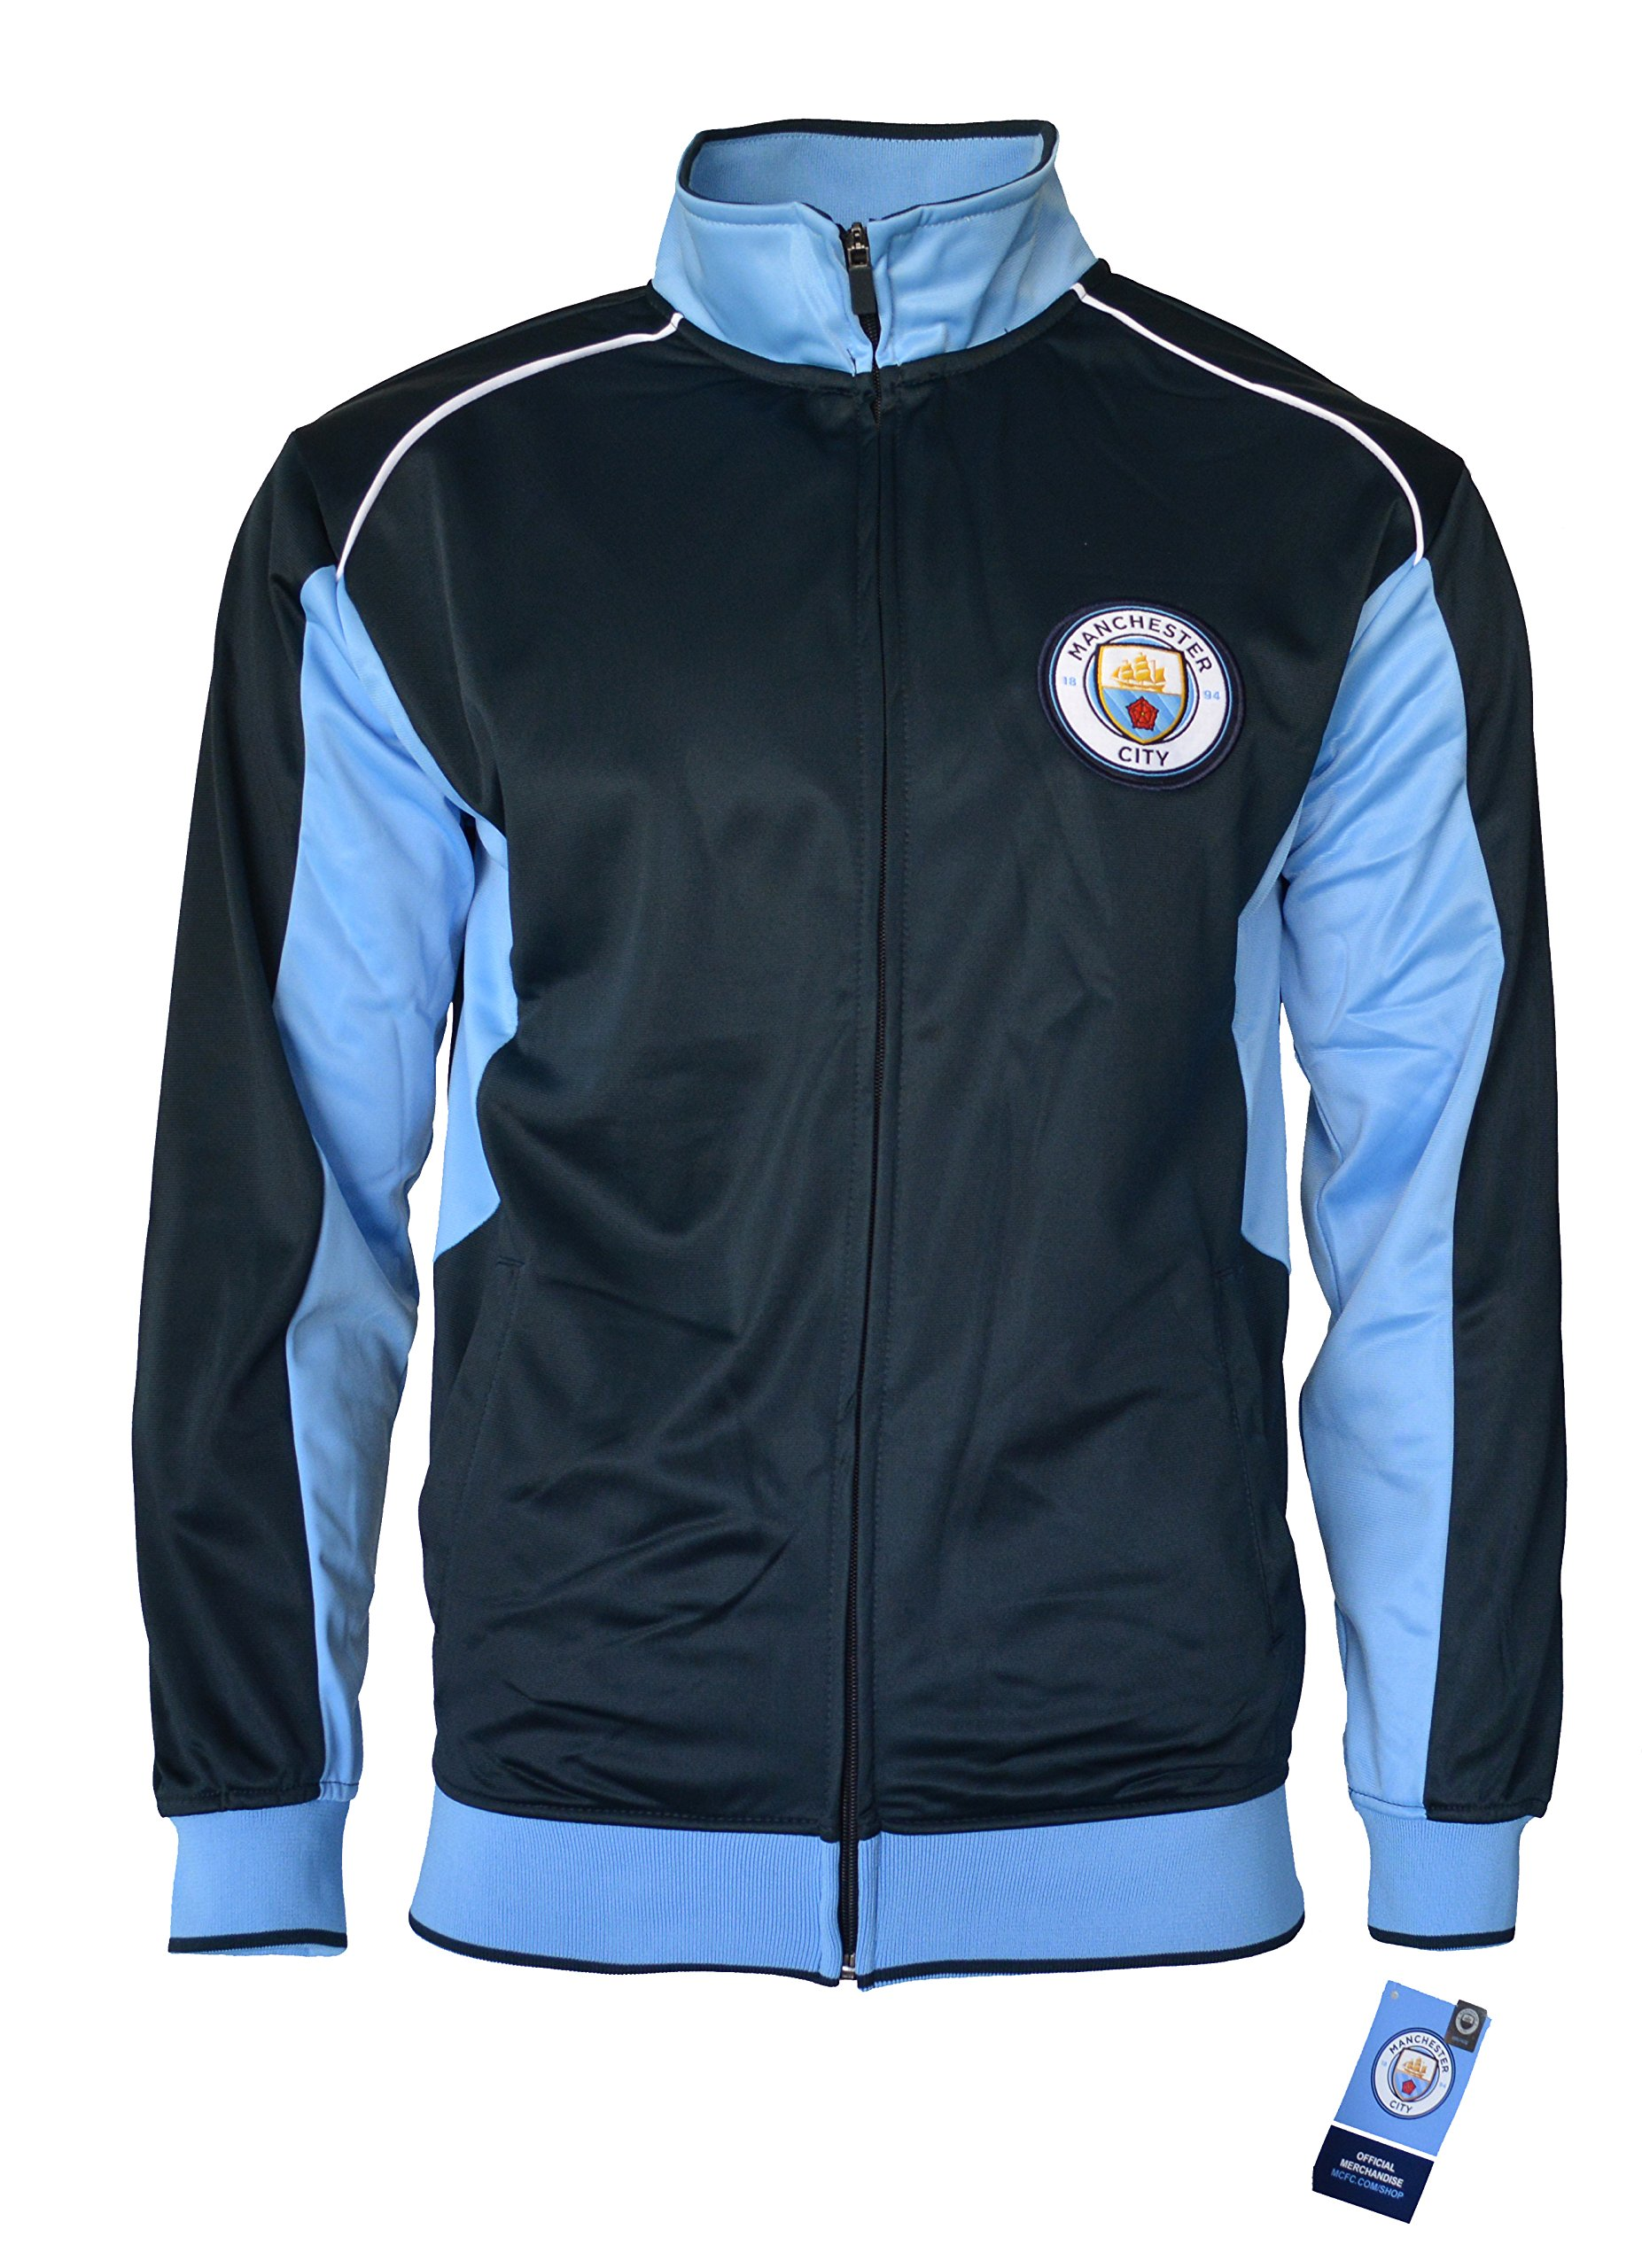 Manchester City Jacket Track Soccer Adult Sizes Soccer Football Official Merchandise (XL, Navy) by Manchester City F.C.